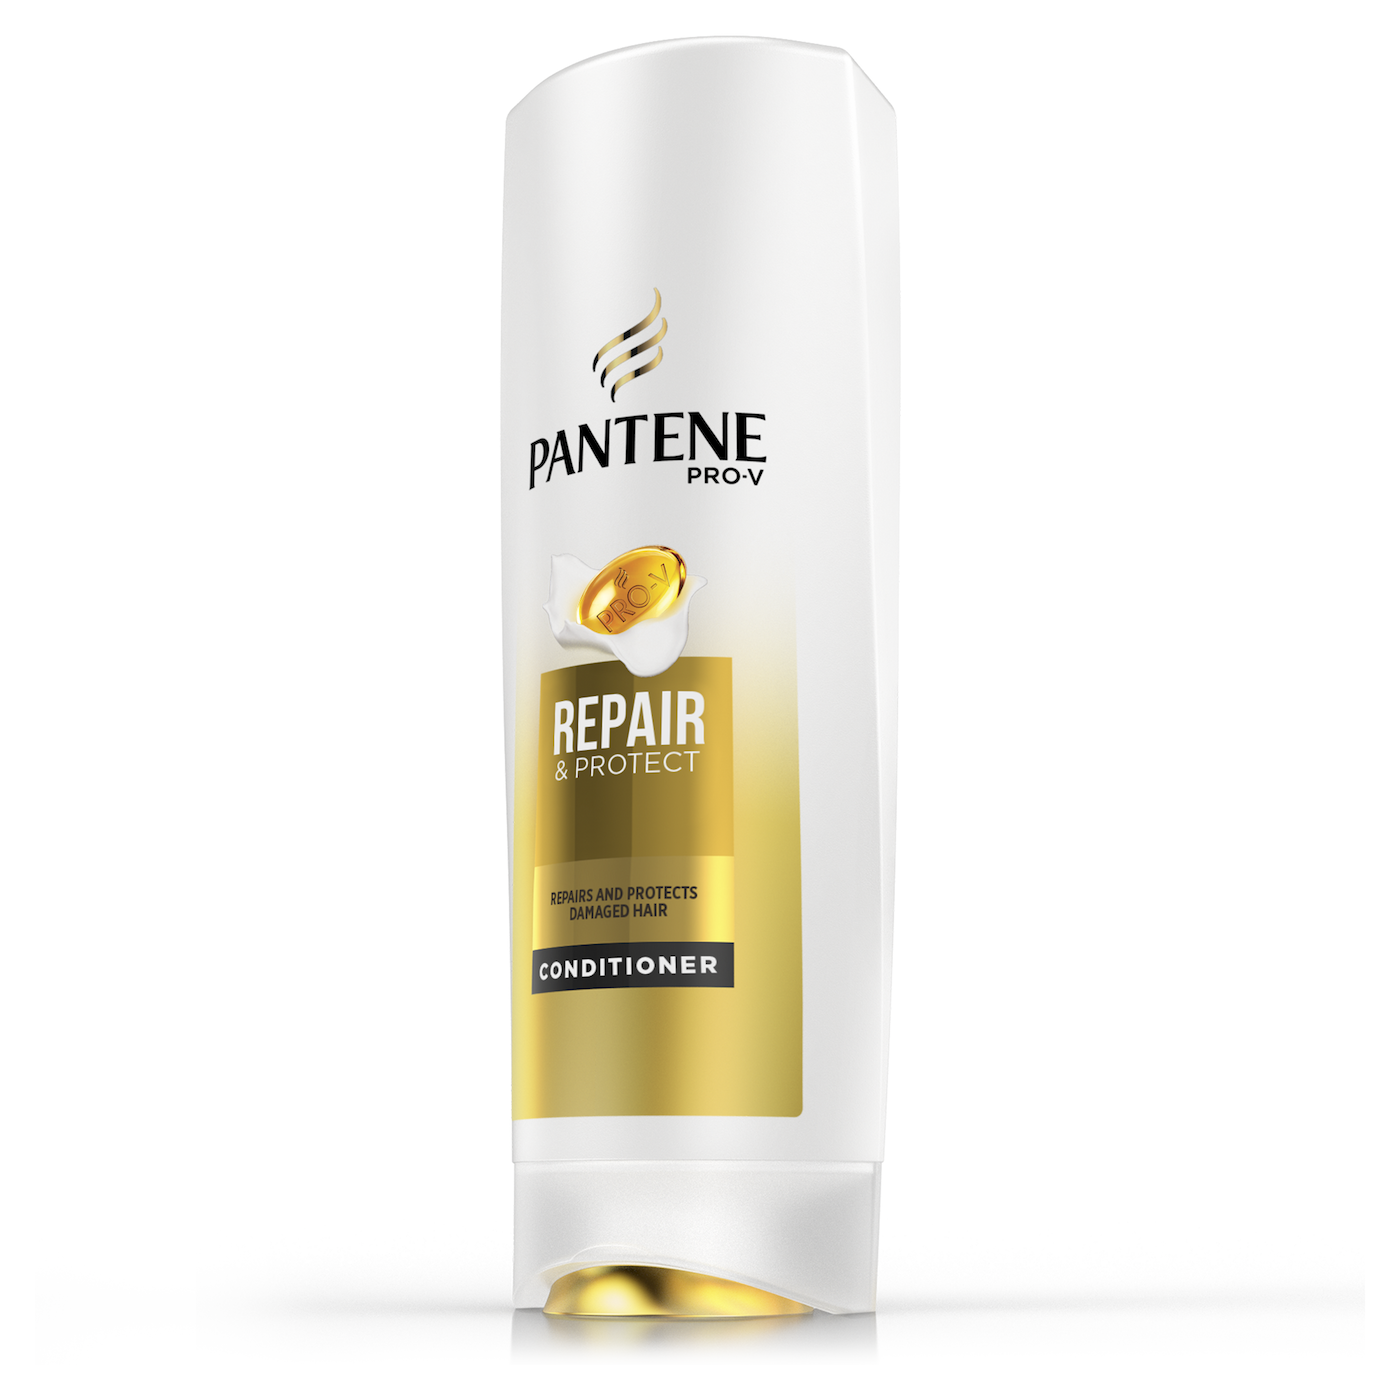 Pantene_CD_Repair & Protect_EU_UK